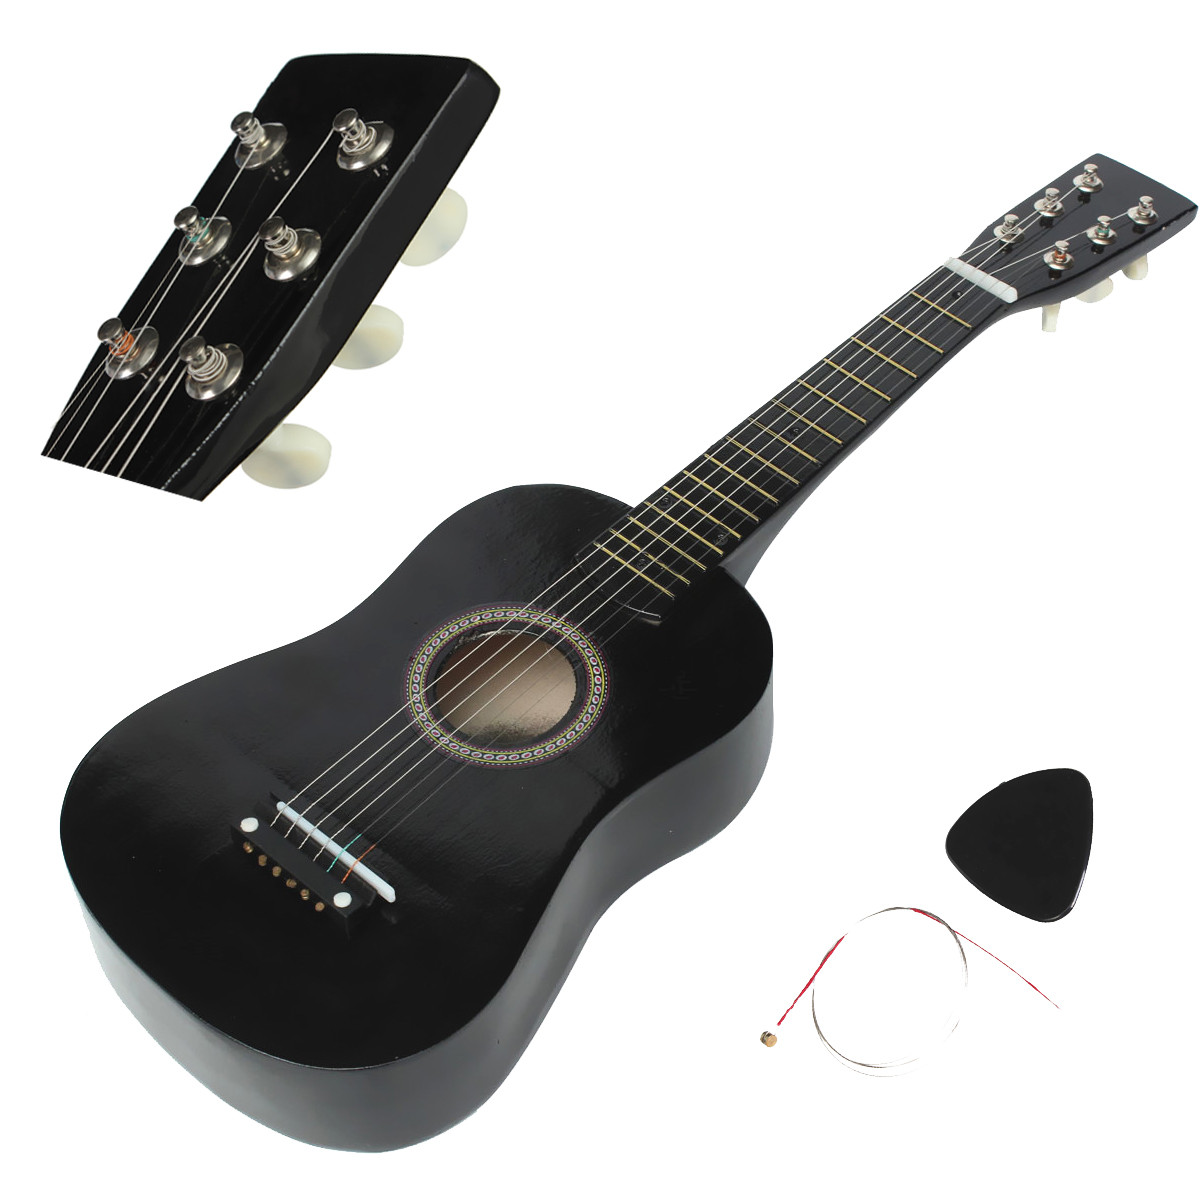 6 Strings Beginners Basswood Acoustic Guitar + Guitar Pick + Wire Strings Kids Children Students Christmas Birthday Gift